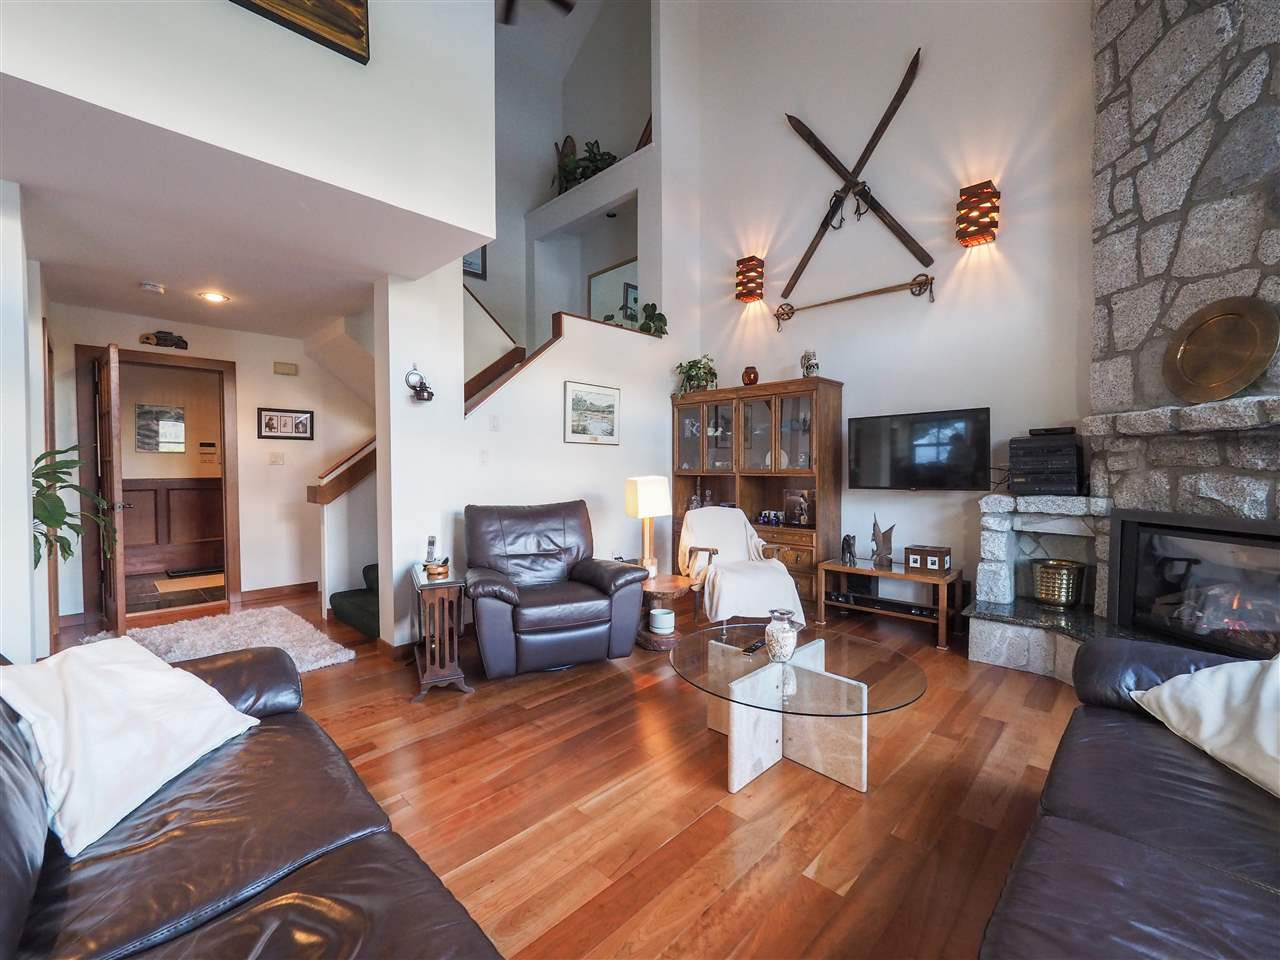 """Main Photo: 8 3502 FALCON Crescent in Whistler: Blueberry Hill Townhouse for sale in """"BLUEBERRY HILL"""" : MLS®# R2436346"""